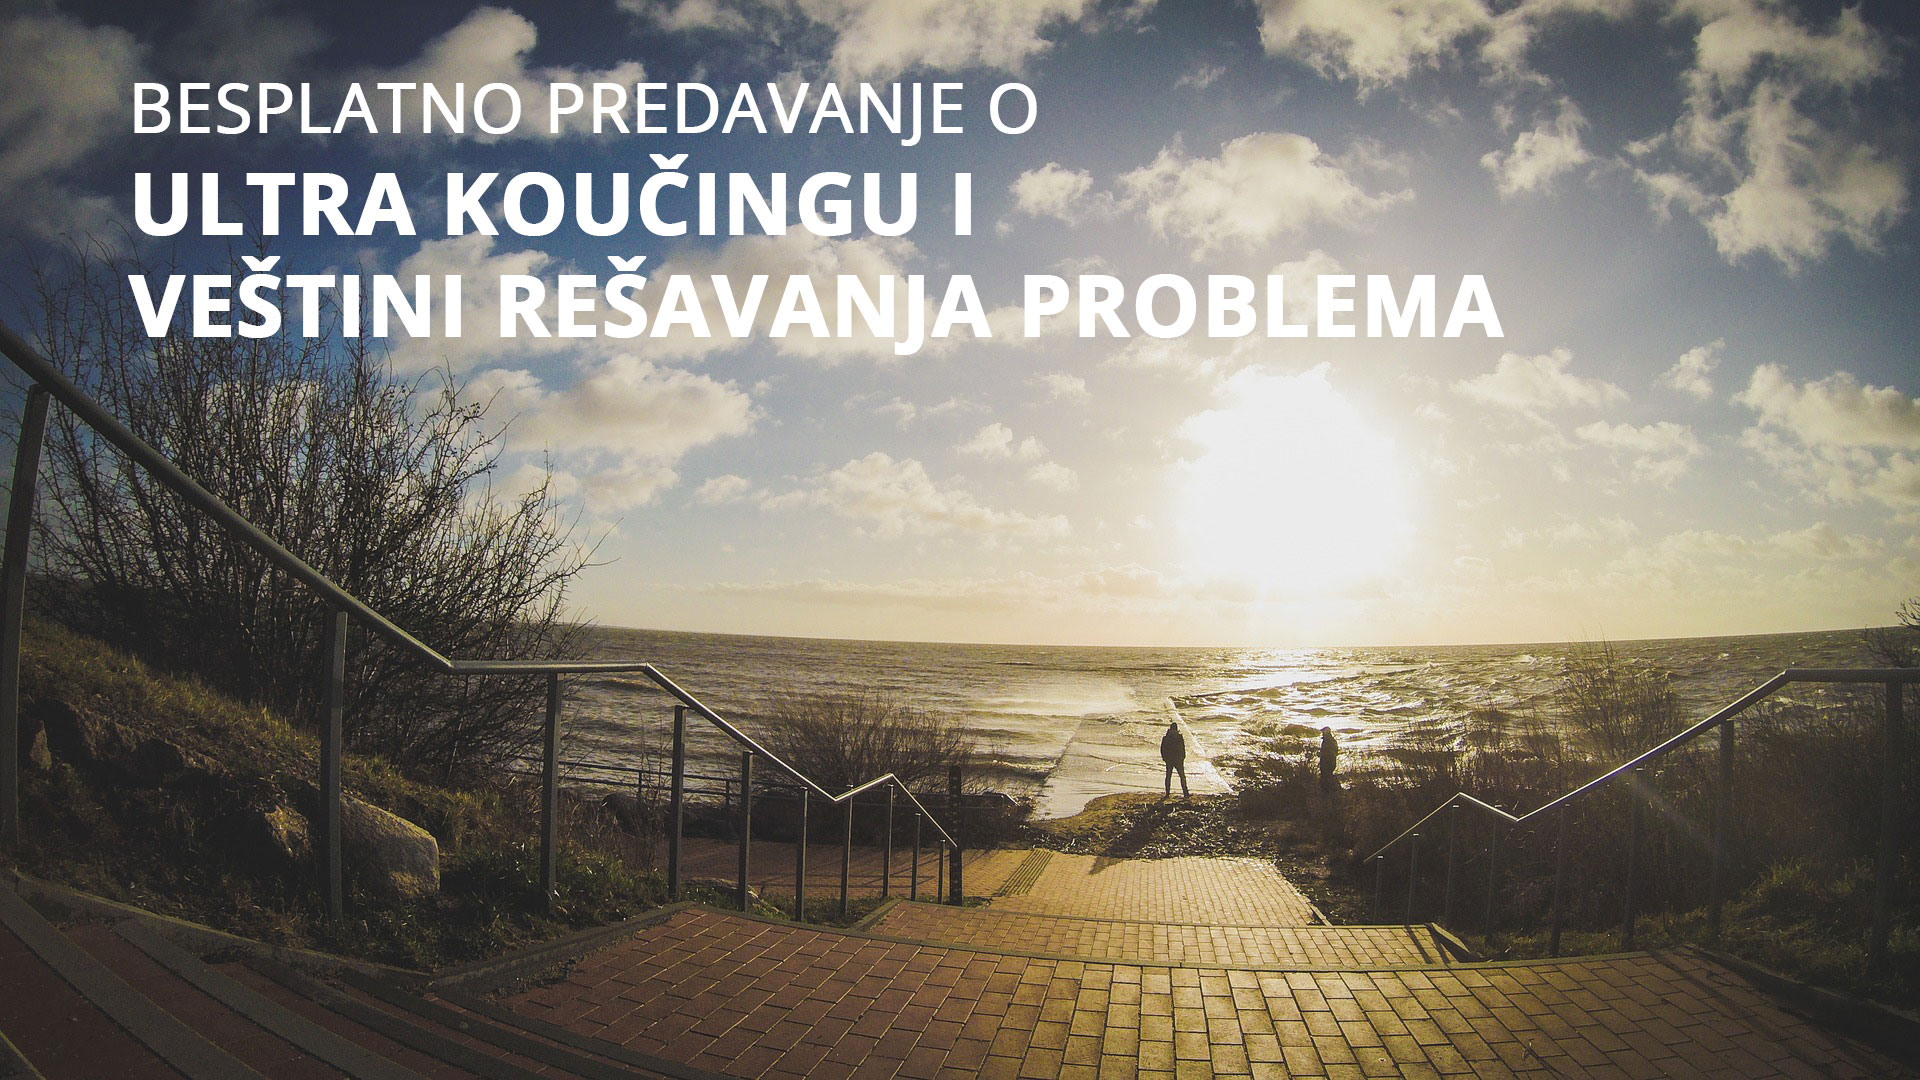 Ultra koucing i resavanje problema